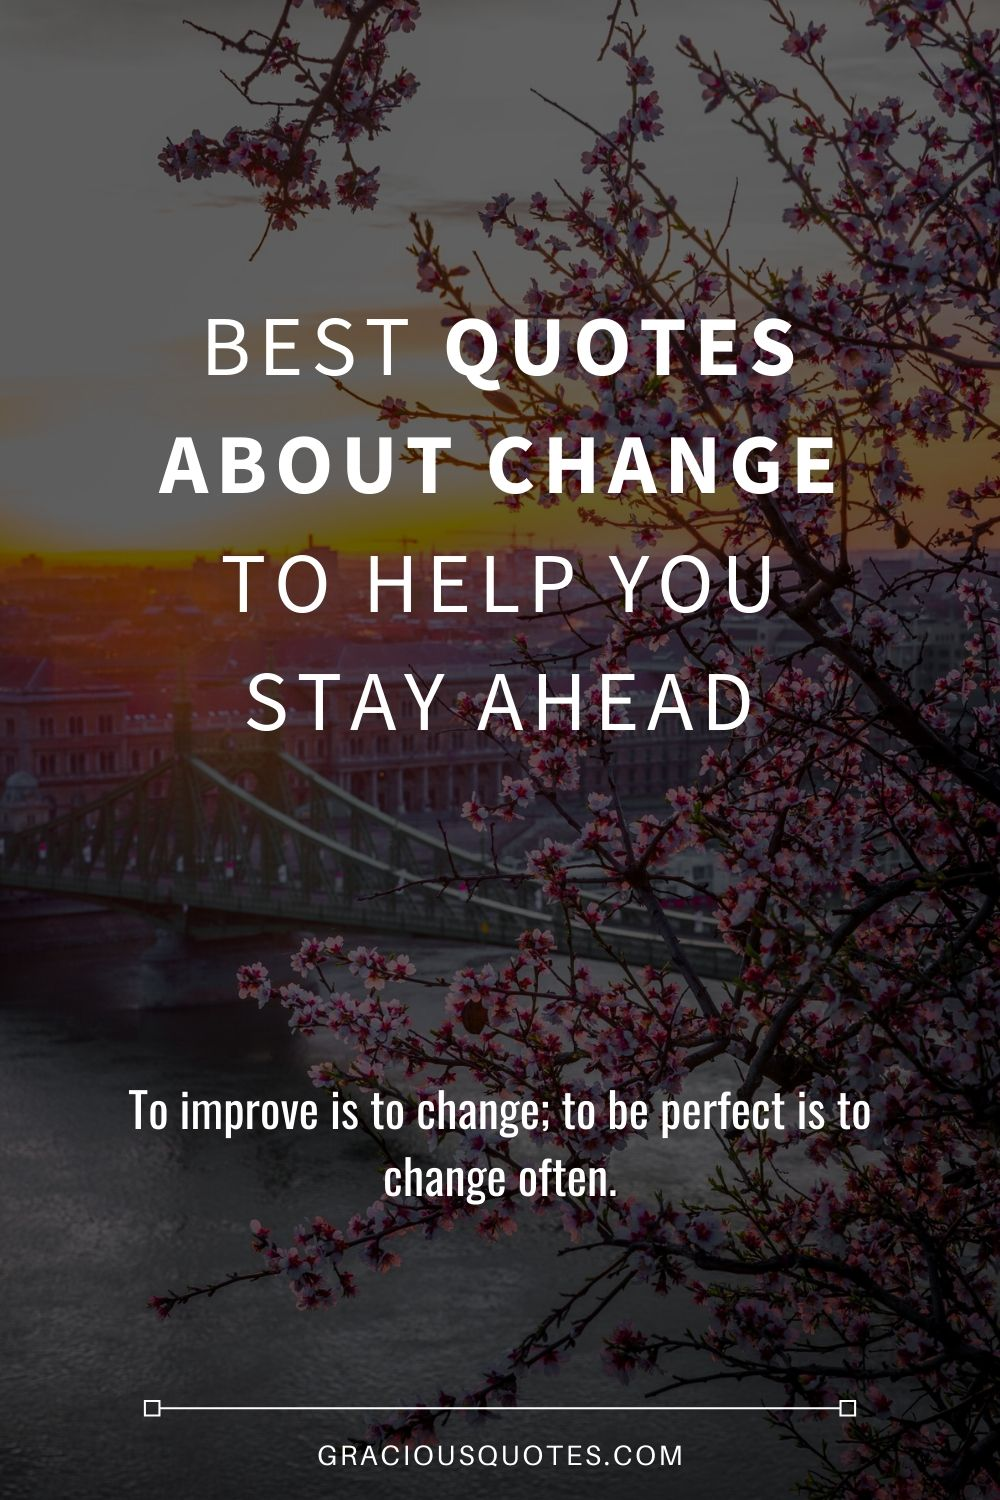 Best-Quotes-About-Change-to-Help-You-Stay-Ahead-Gracious-Quotes